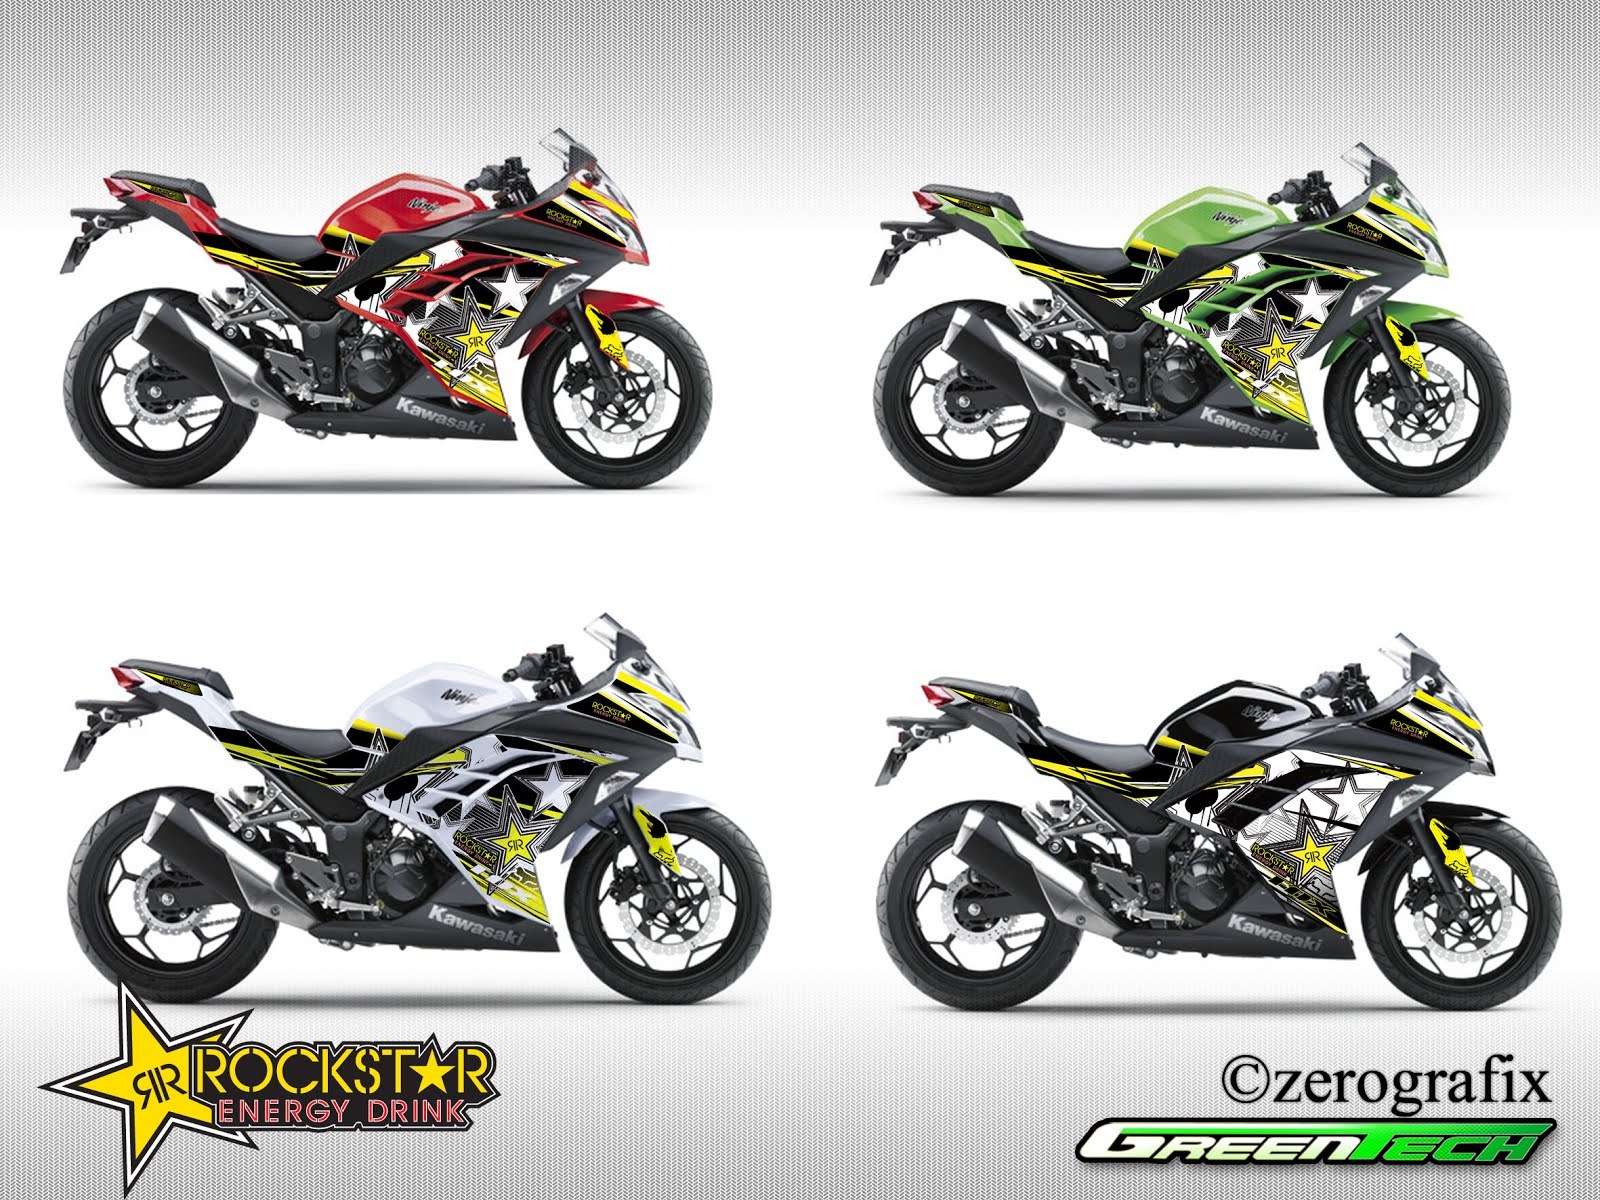 Performance and bodywork parts Ninja 250 by Joo0 [Pindahan dr KASK*S.com] Banner%2Brockstar%2Bcopy